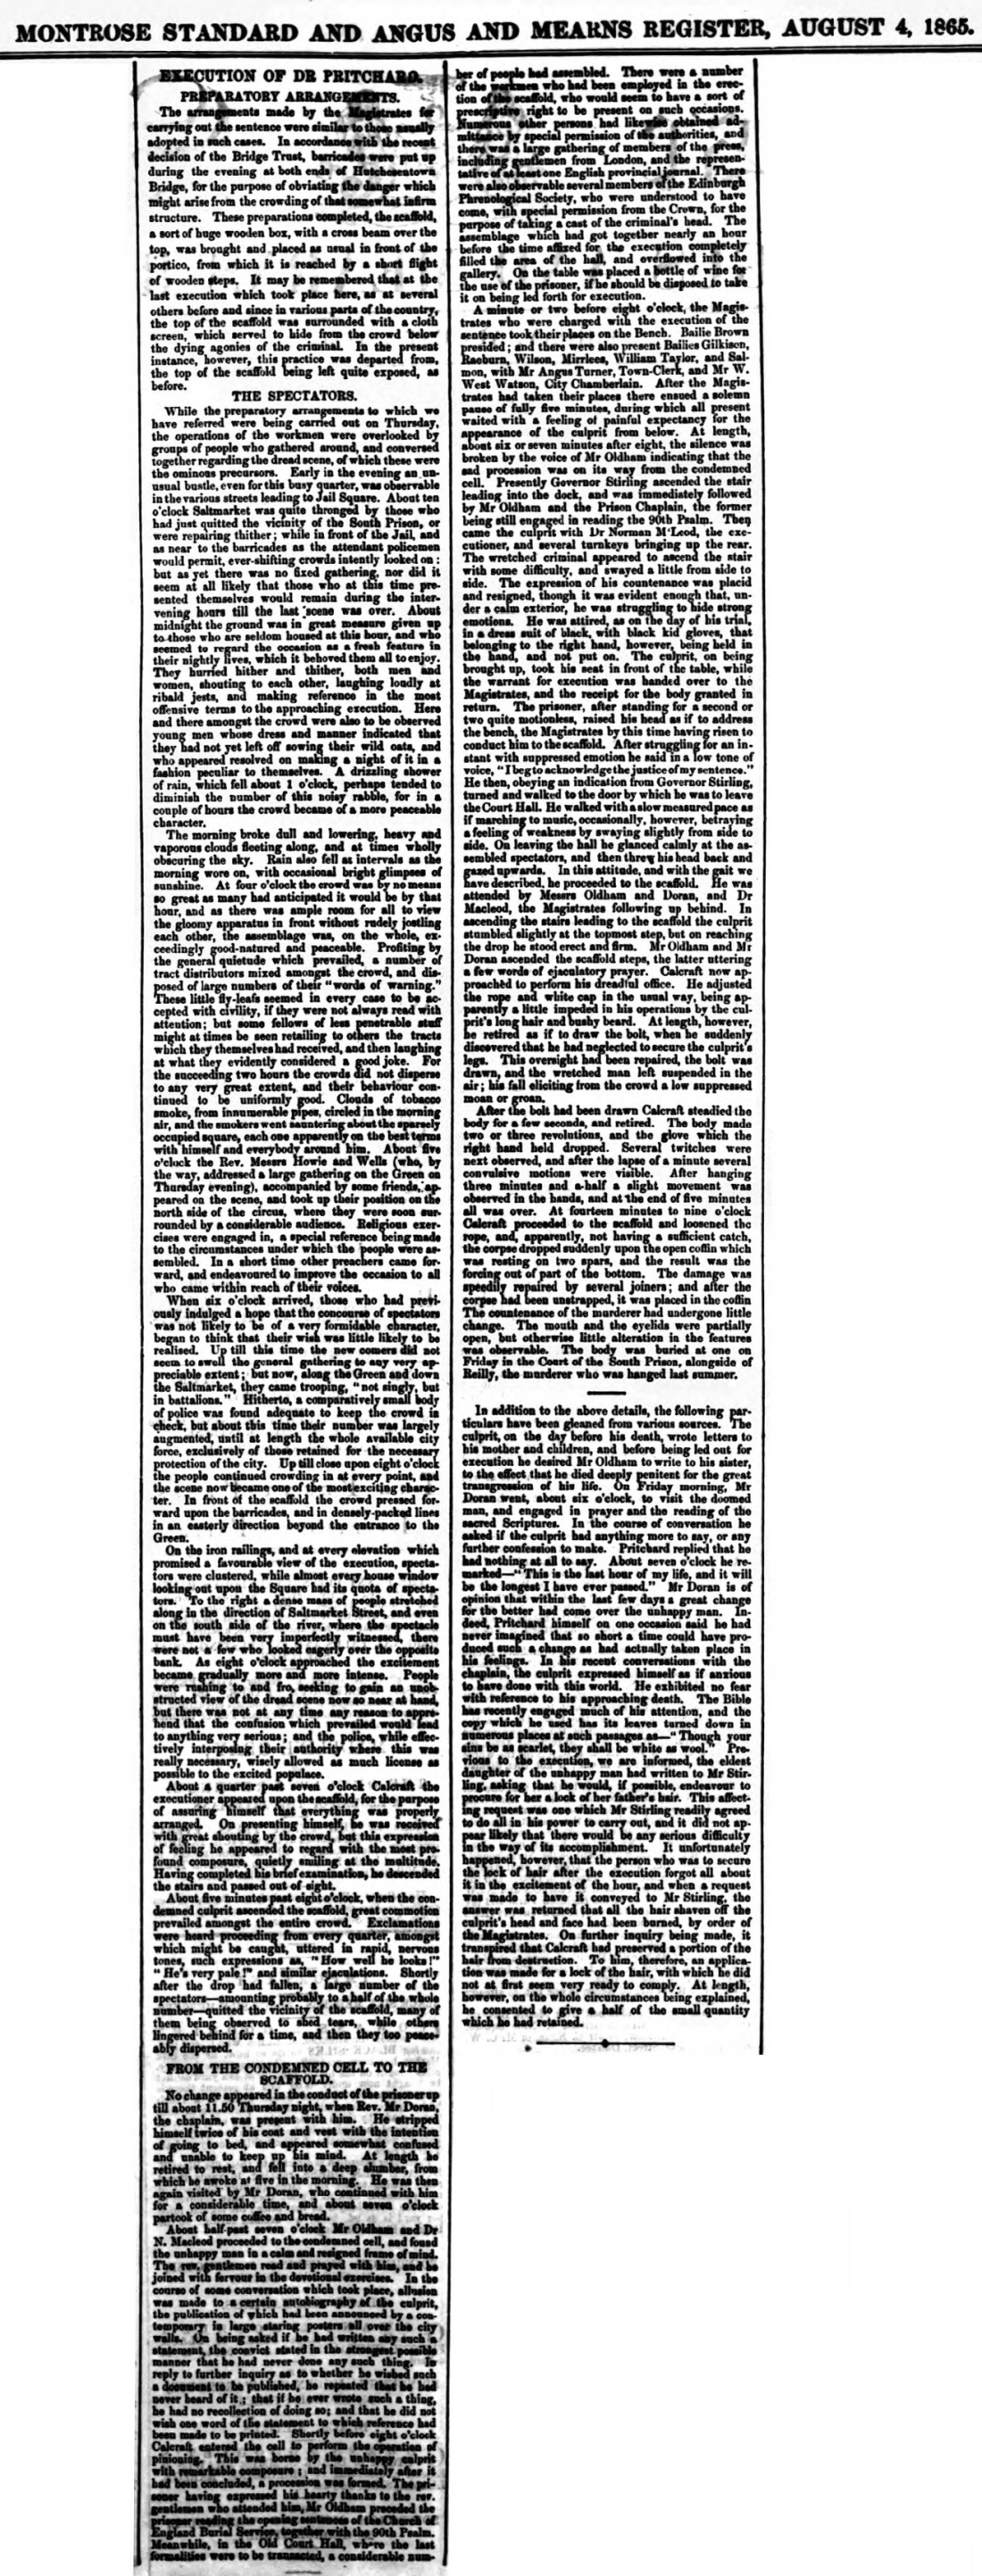 Screenshot_2020-07-09 Montrose Standard and Angus and Meai{ns Register, August 4, 1865 Montrose Standard Friday 04 August 1[...](1)